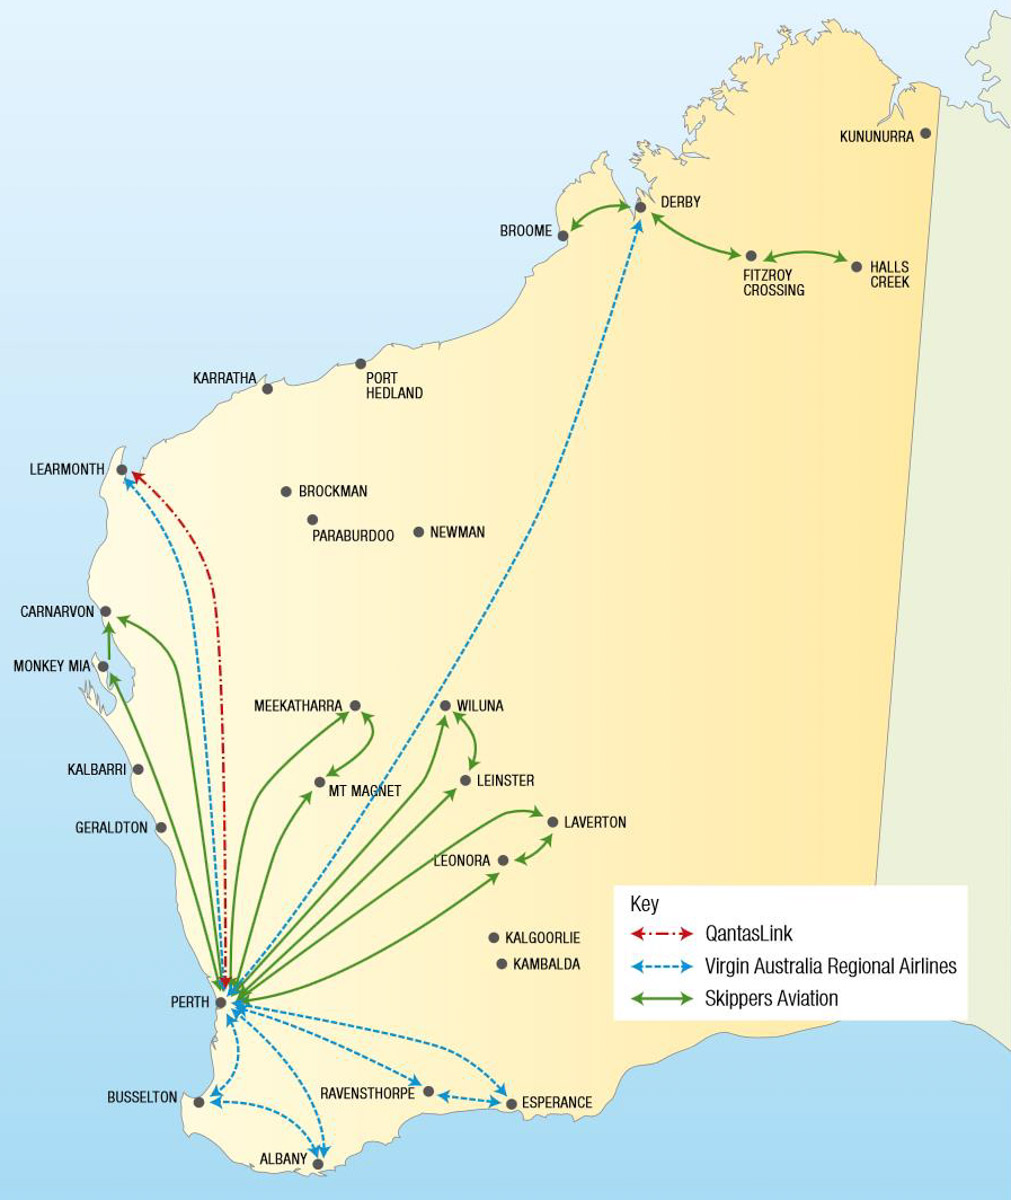 WA regulated air routes 2015.  (WA Department of Transport)